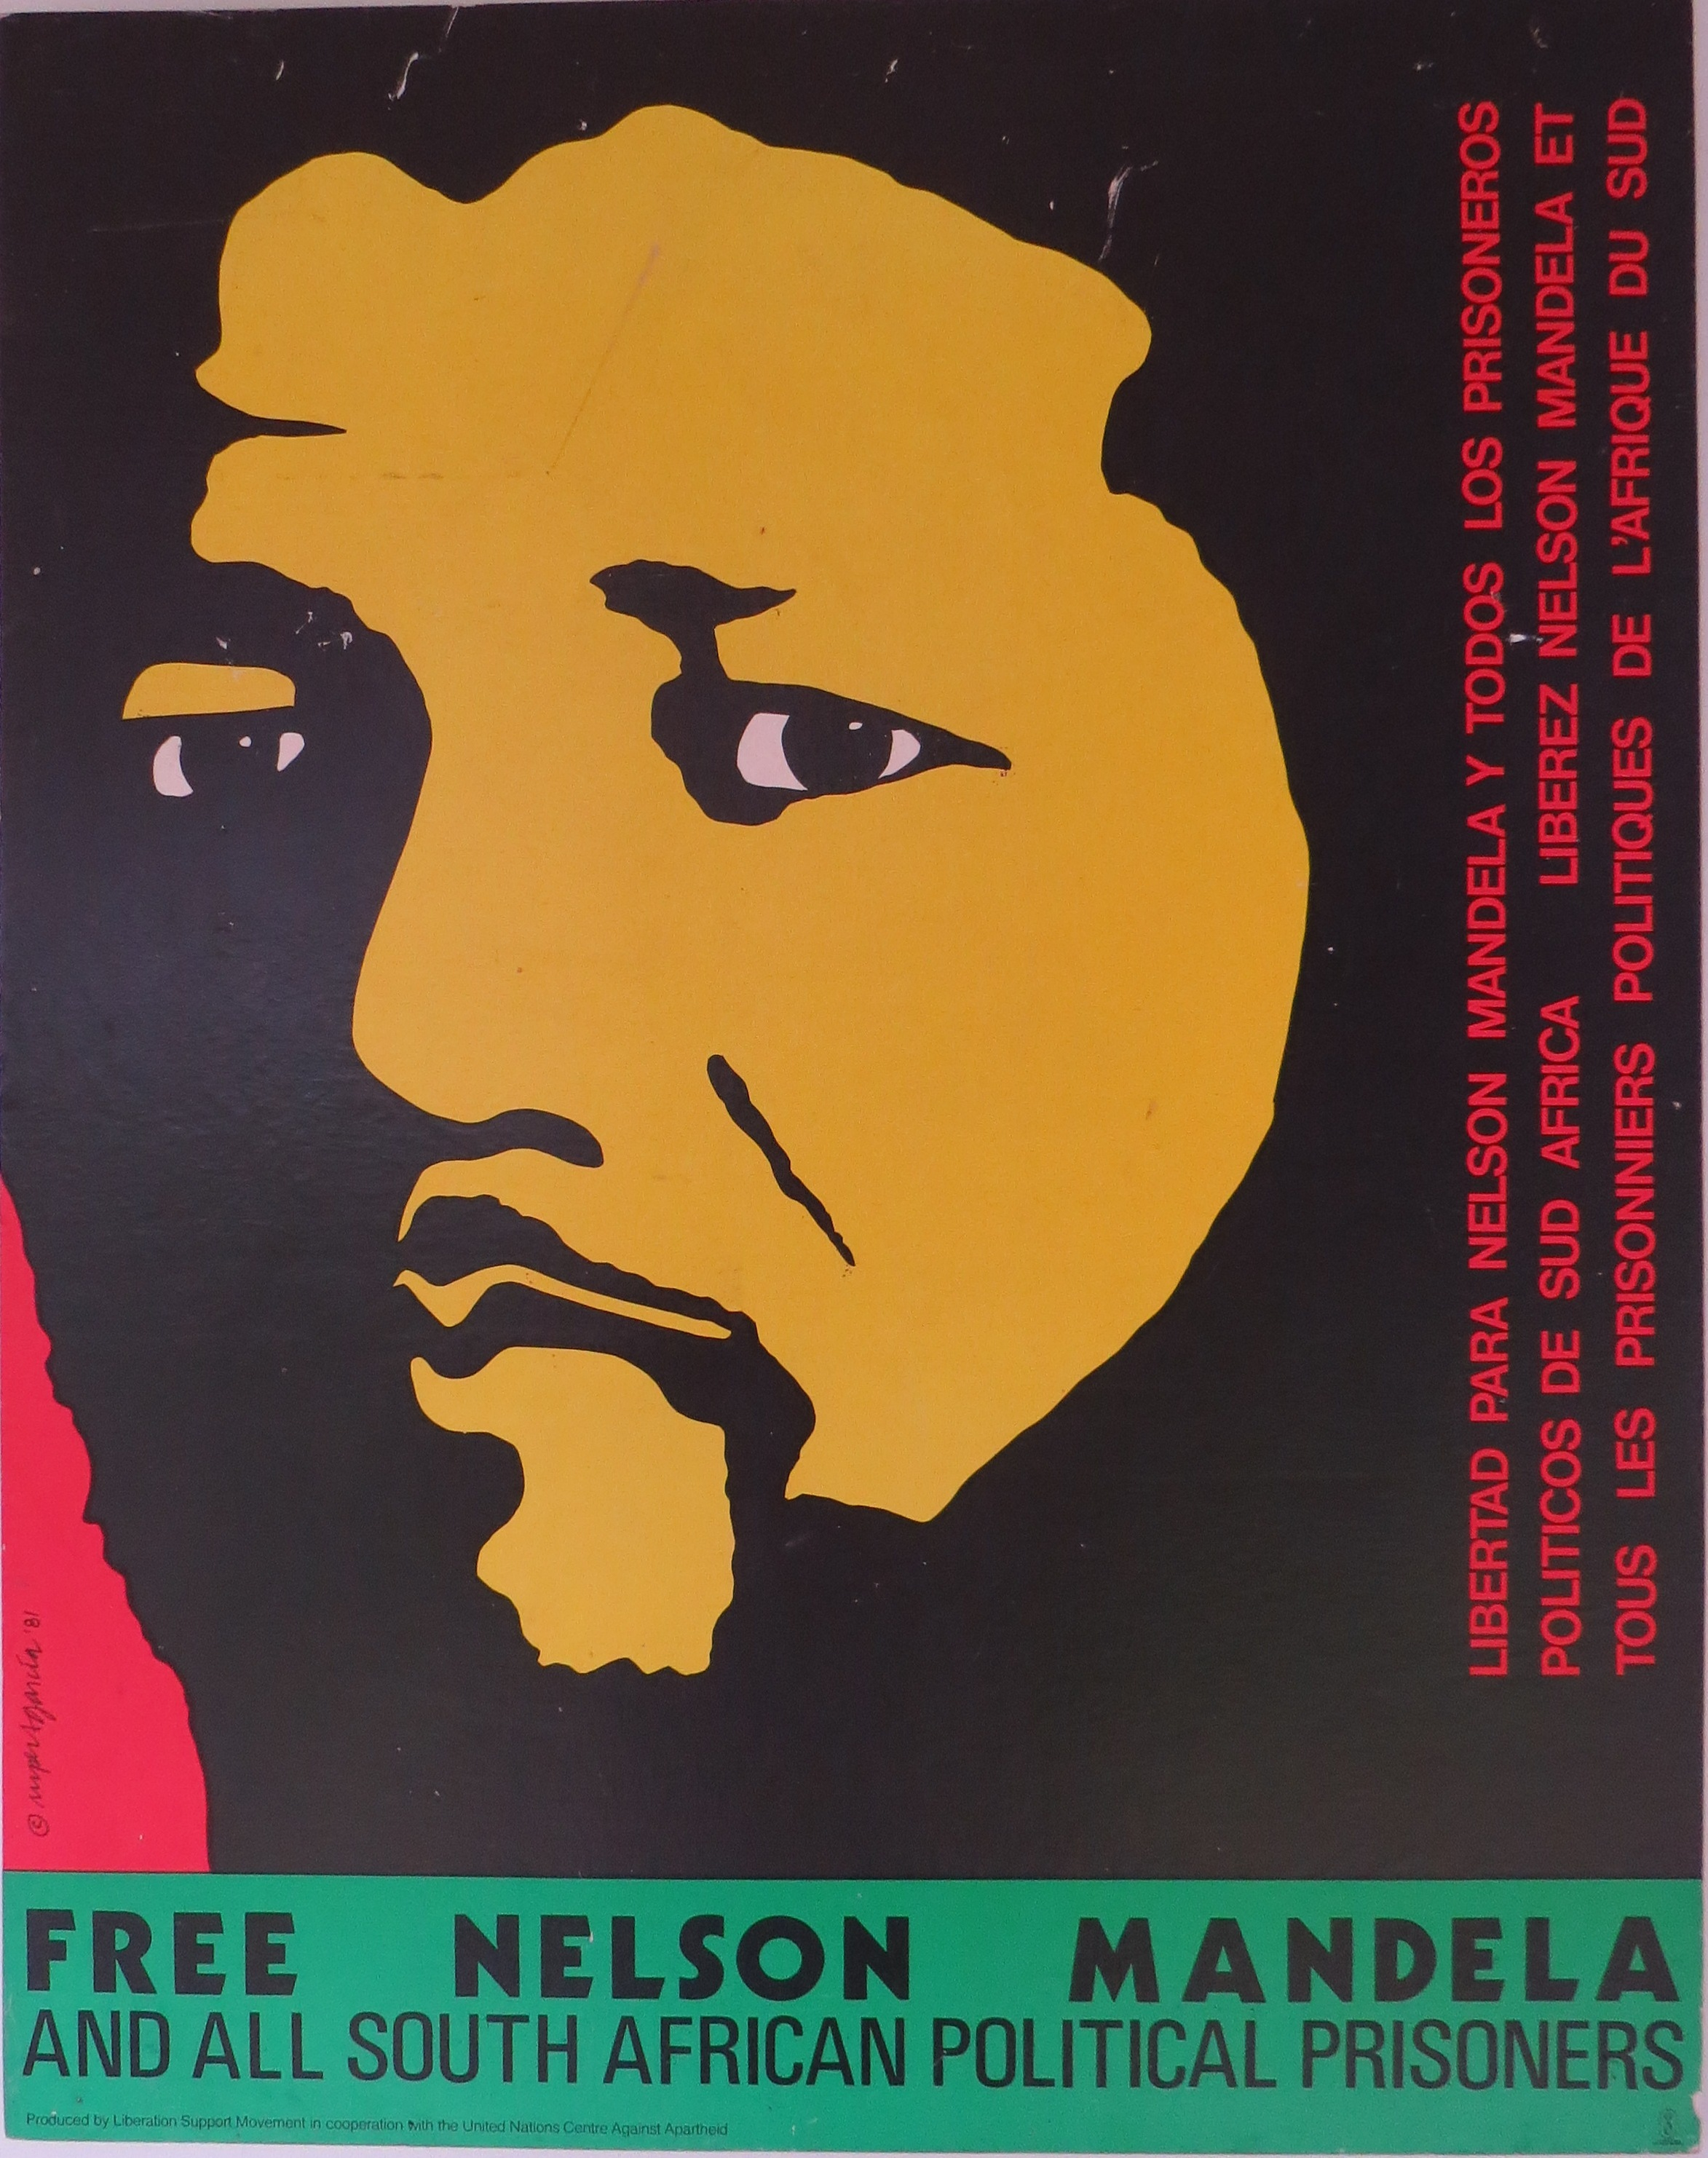 This poster from the UN Centre Against Apartheid, Liberation Support Movement used an artist's impression of Mandela